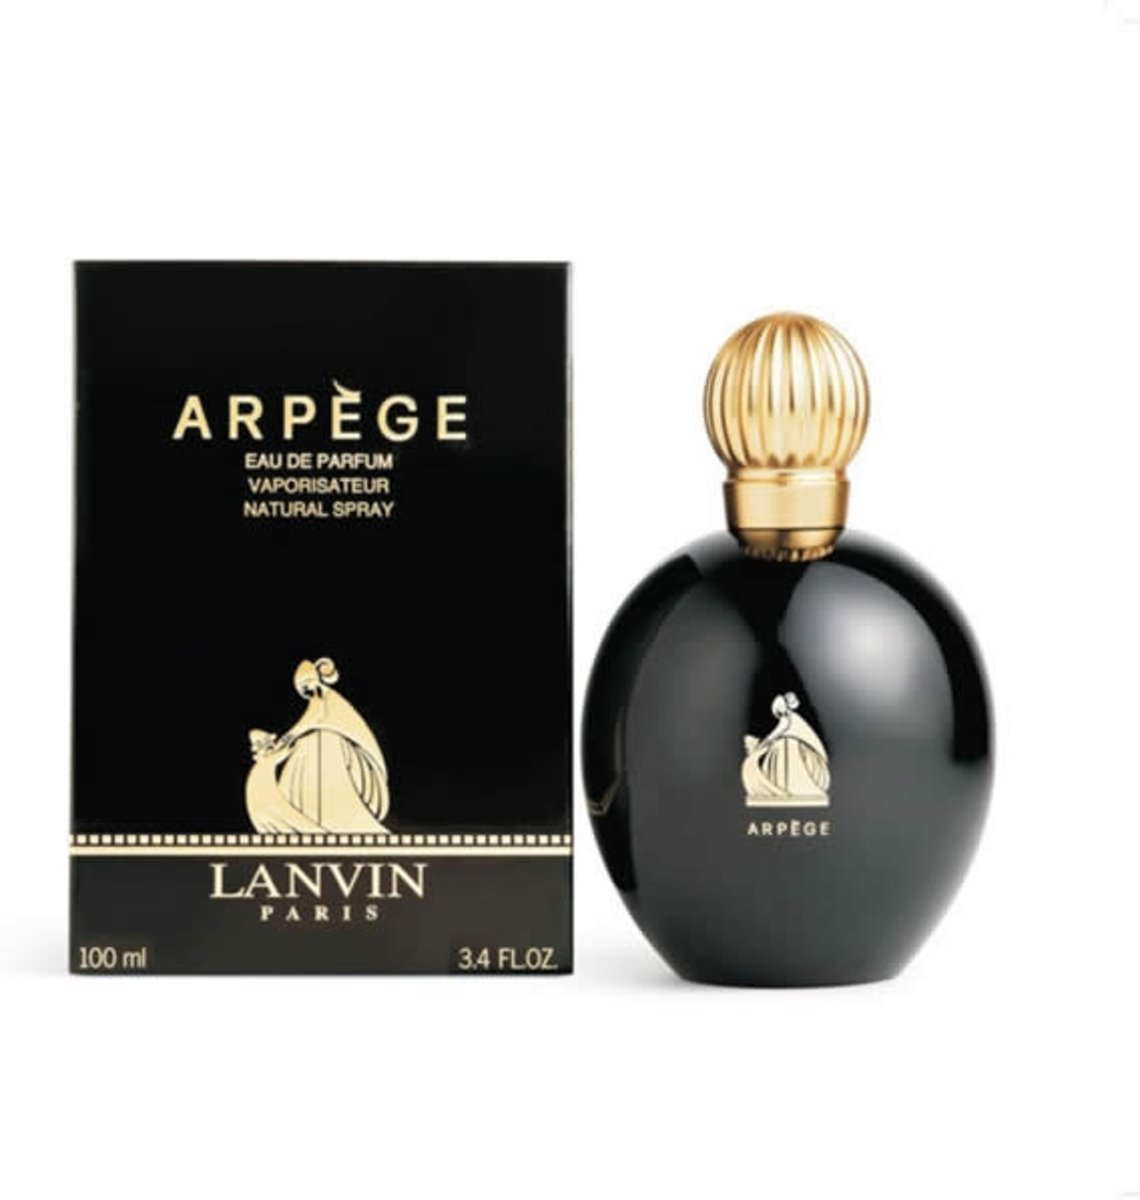 MULTI BUNDEL 2 stuks Lanvin Arpege Eau De Perfume Spray 100ml